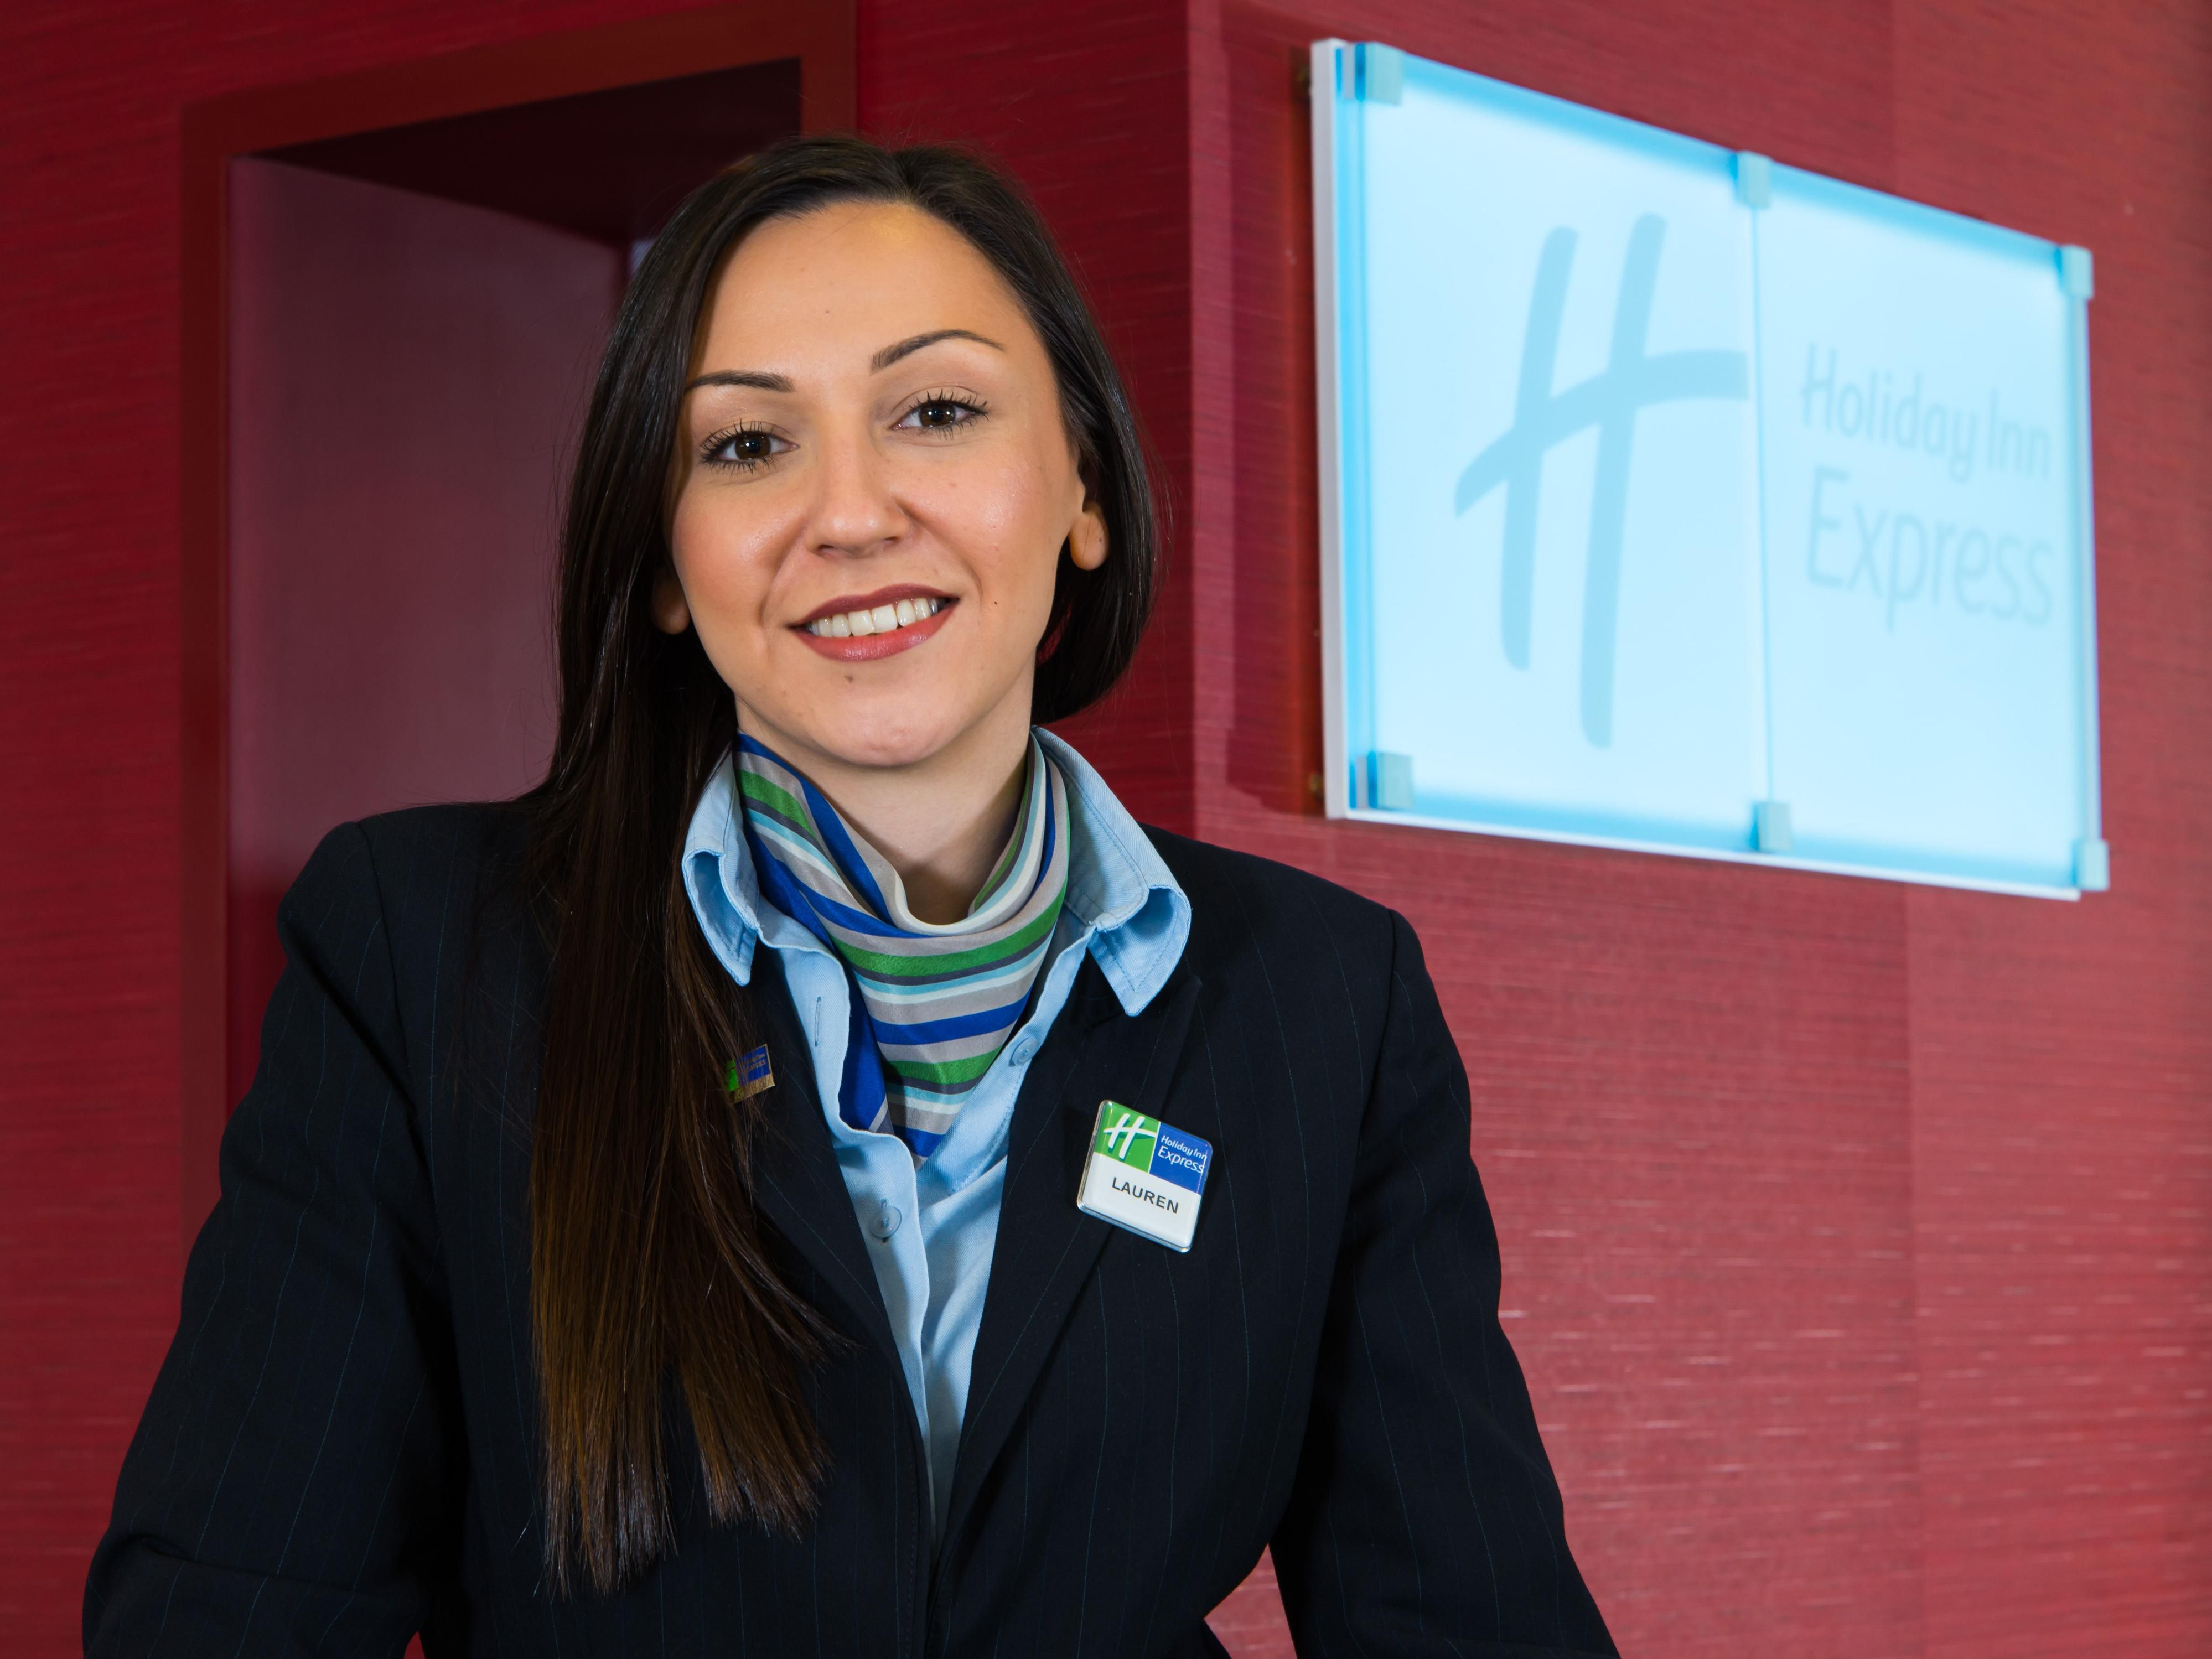 Our friendly Reception team are on hand 24 hours a day